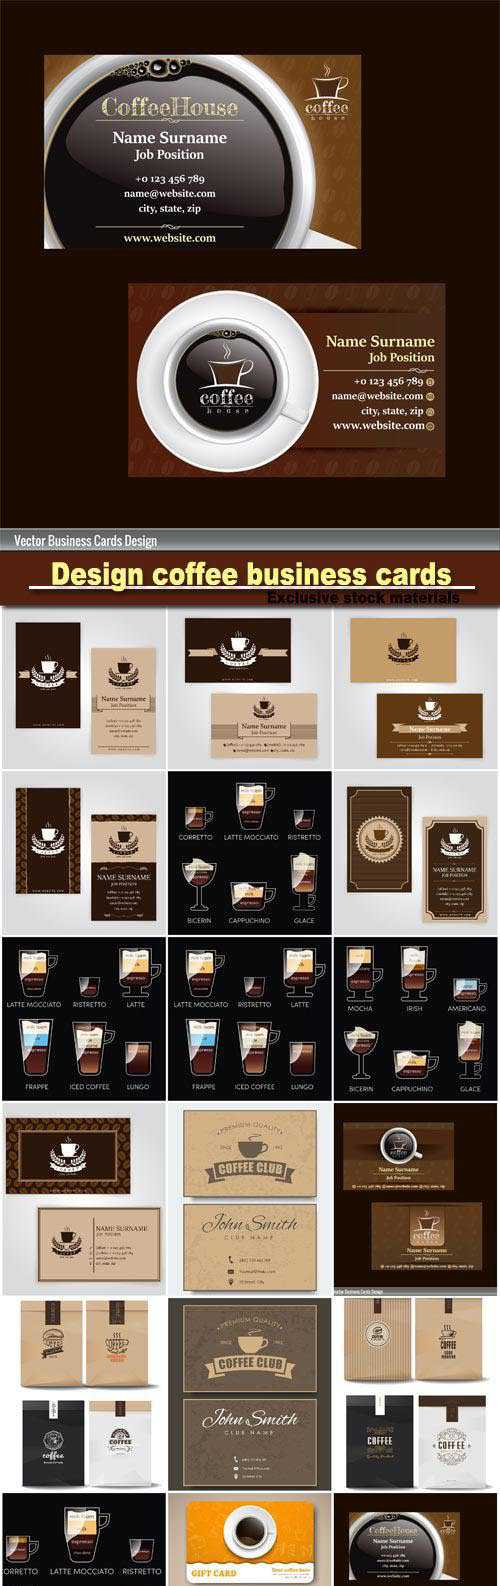 Design coffee business cards, coffee badge logo